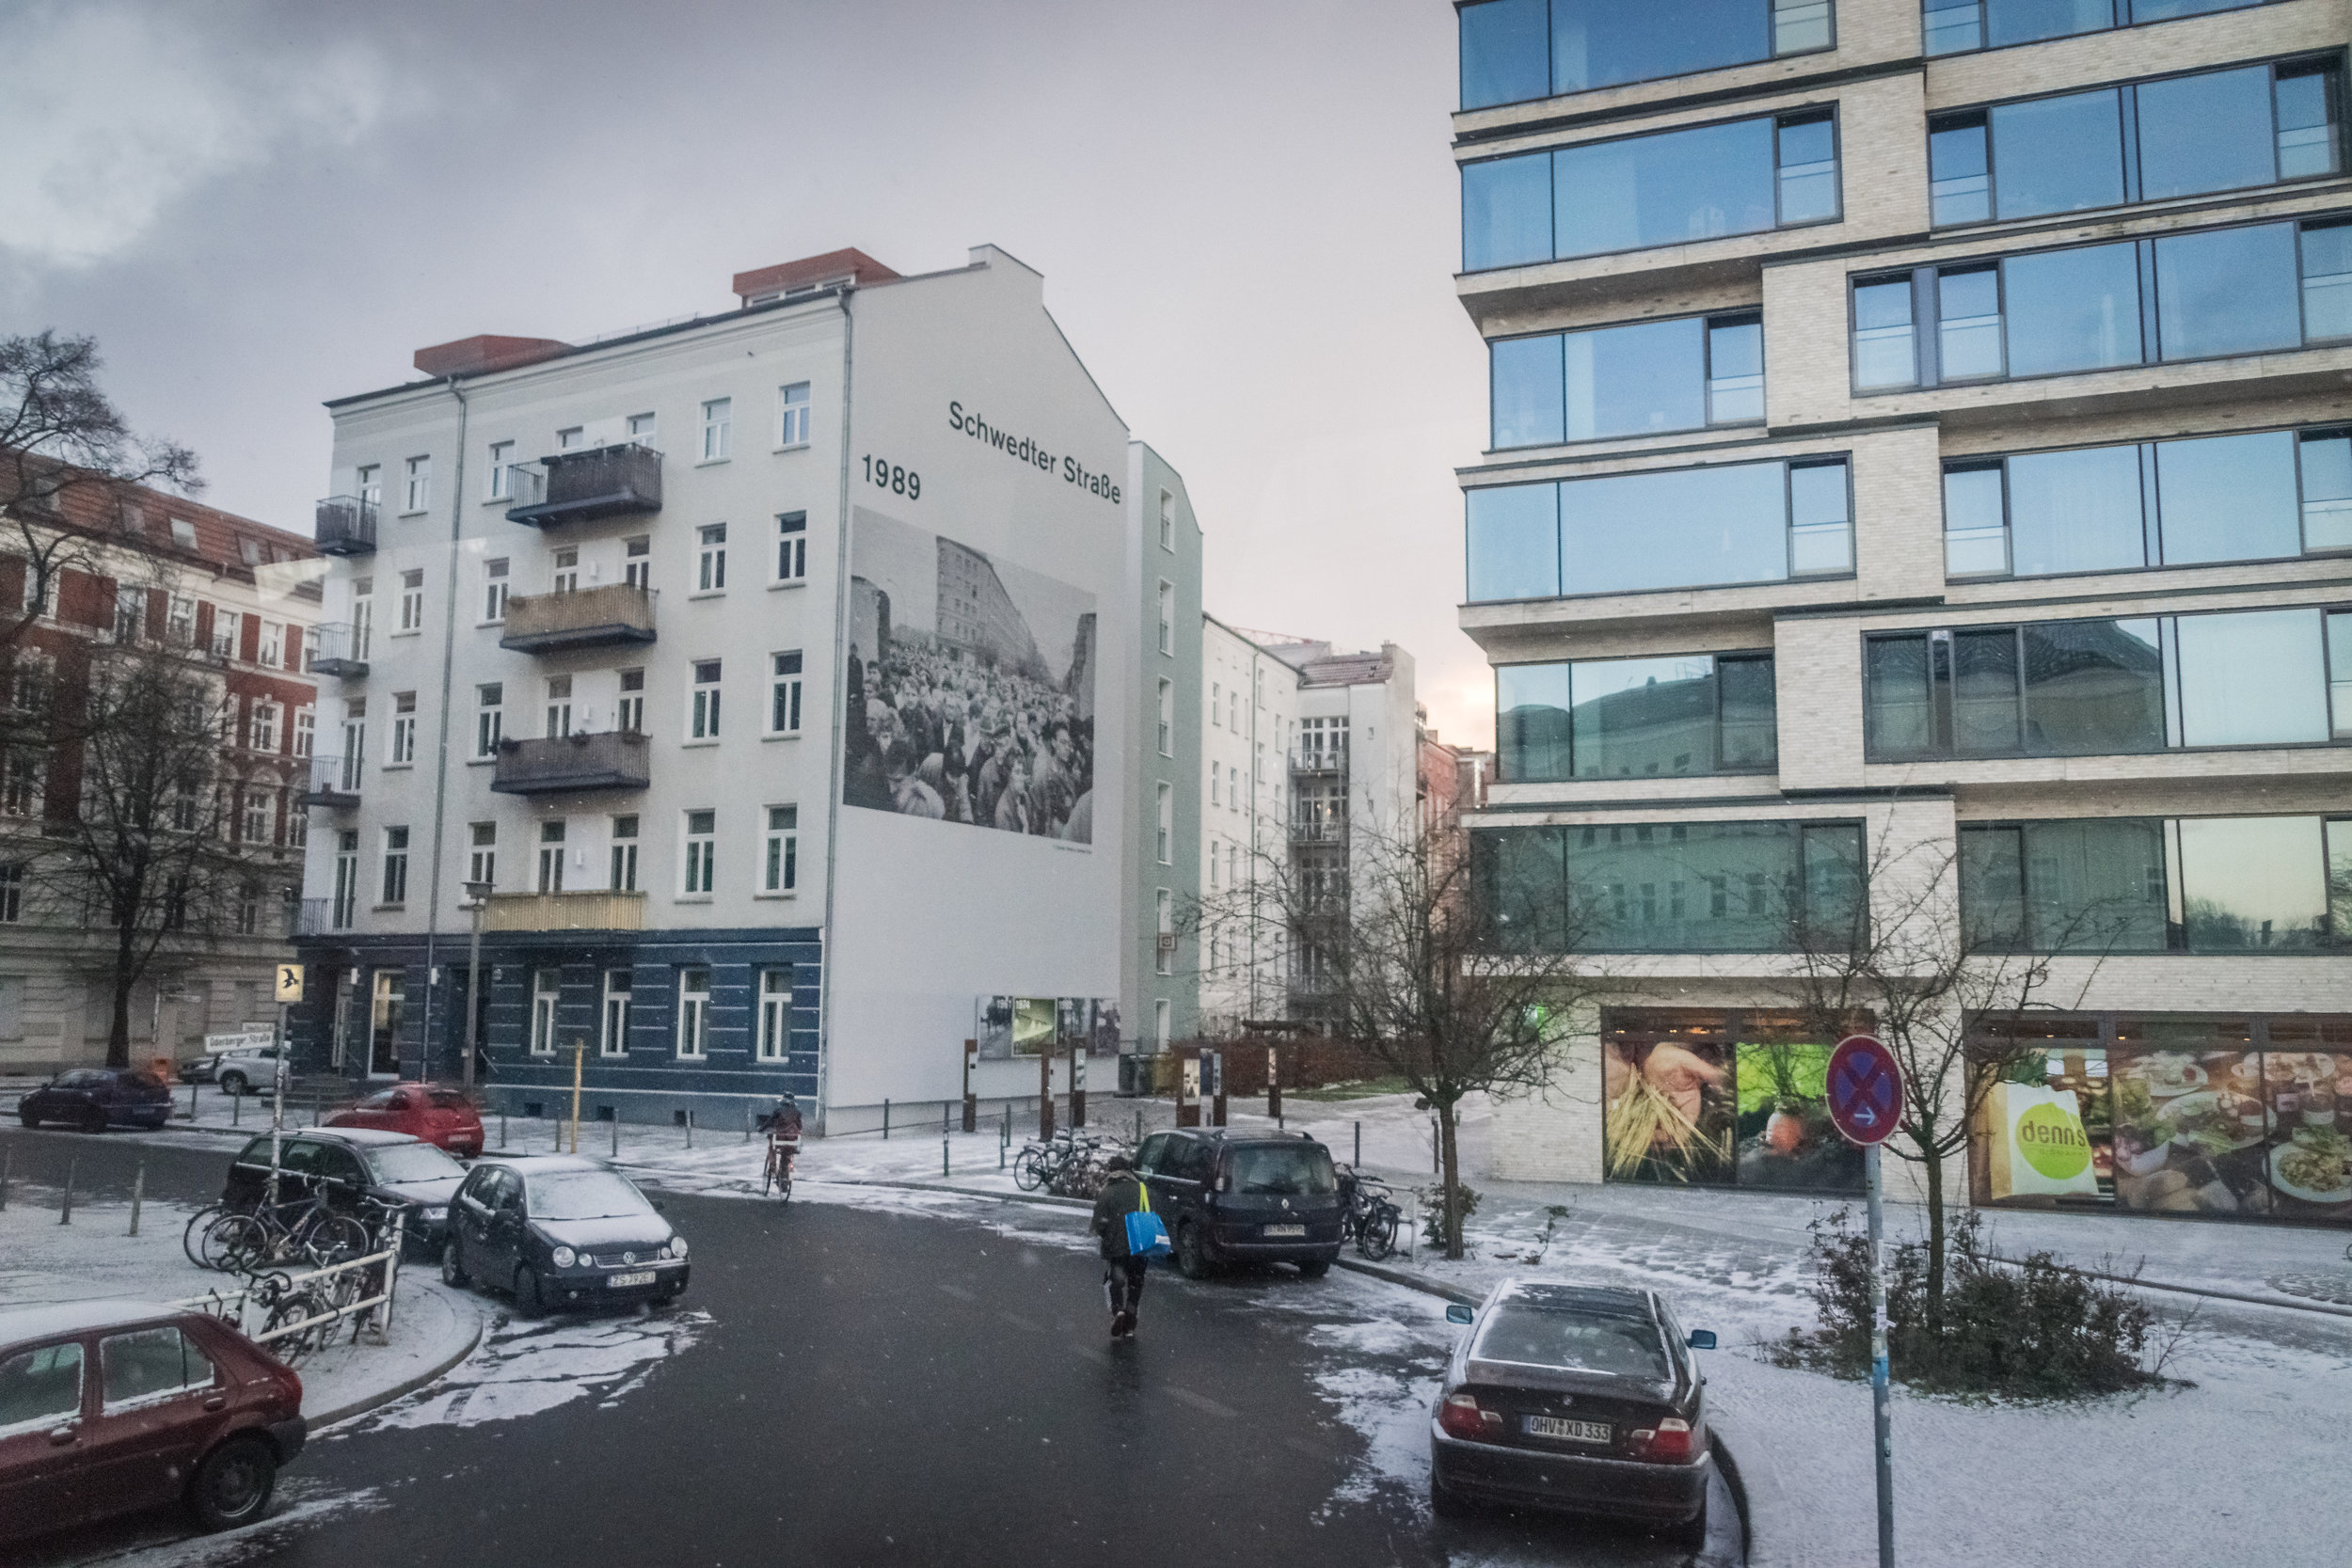 Berlin Wall or Checkpoint Charlie-8.jpg